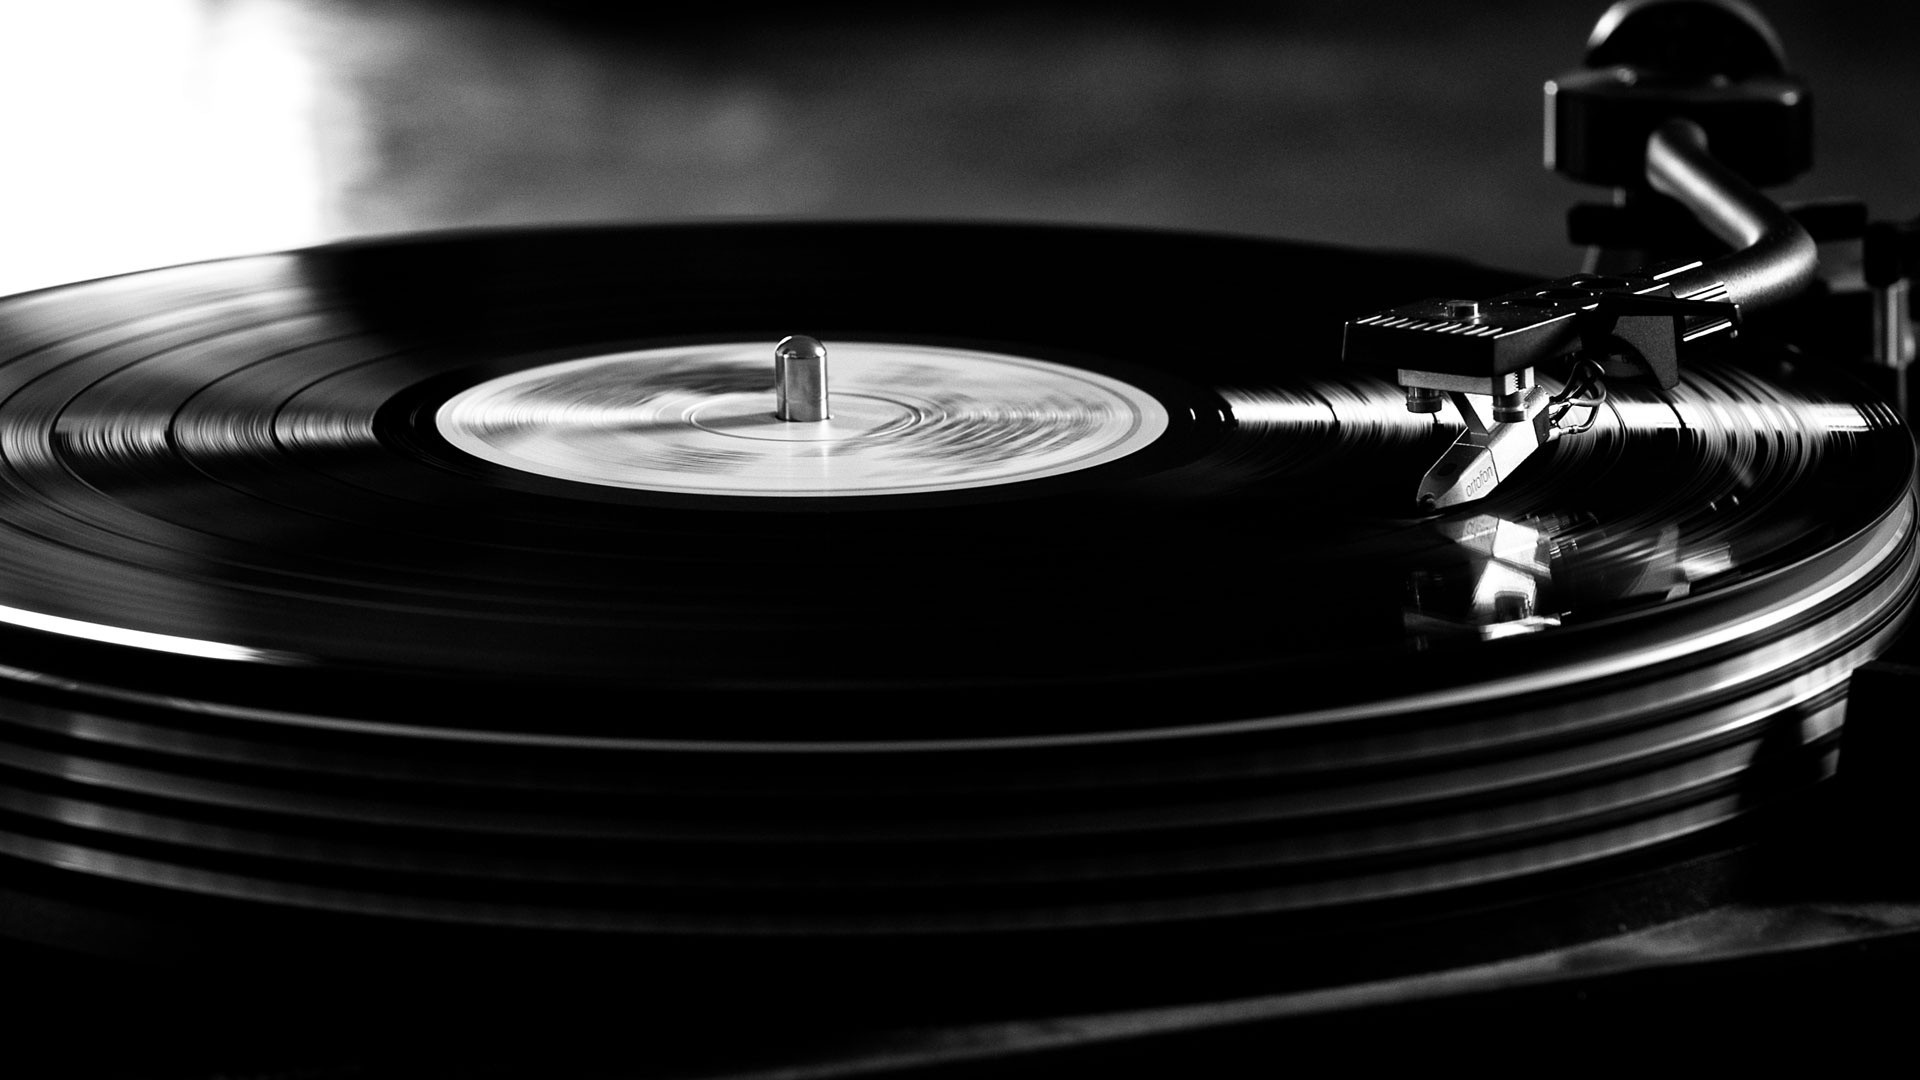 The first 'HD vinyl' could be in record stores by 2019